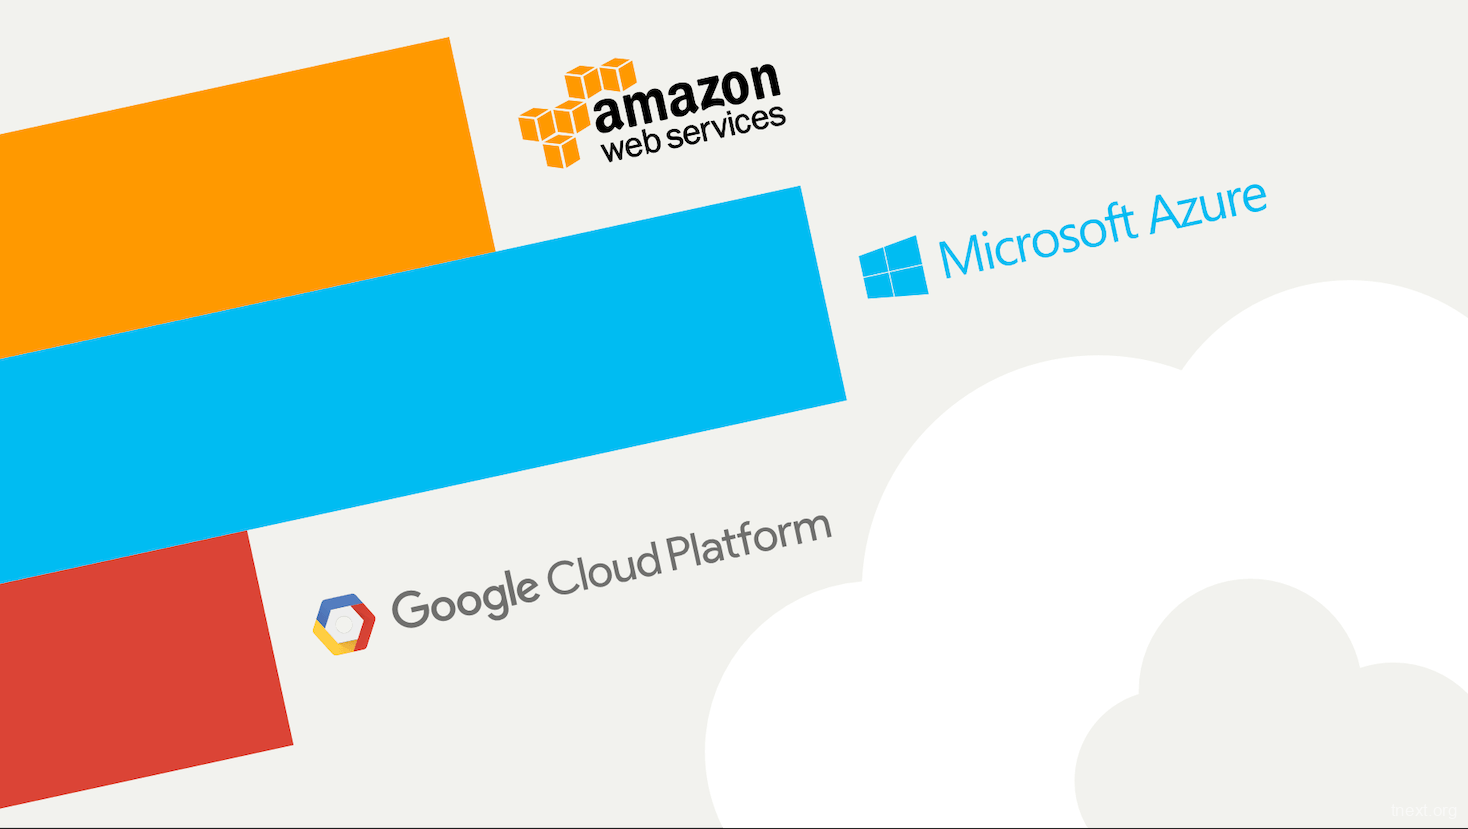 AWS\Google cloud\Azure